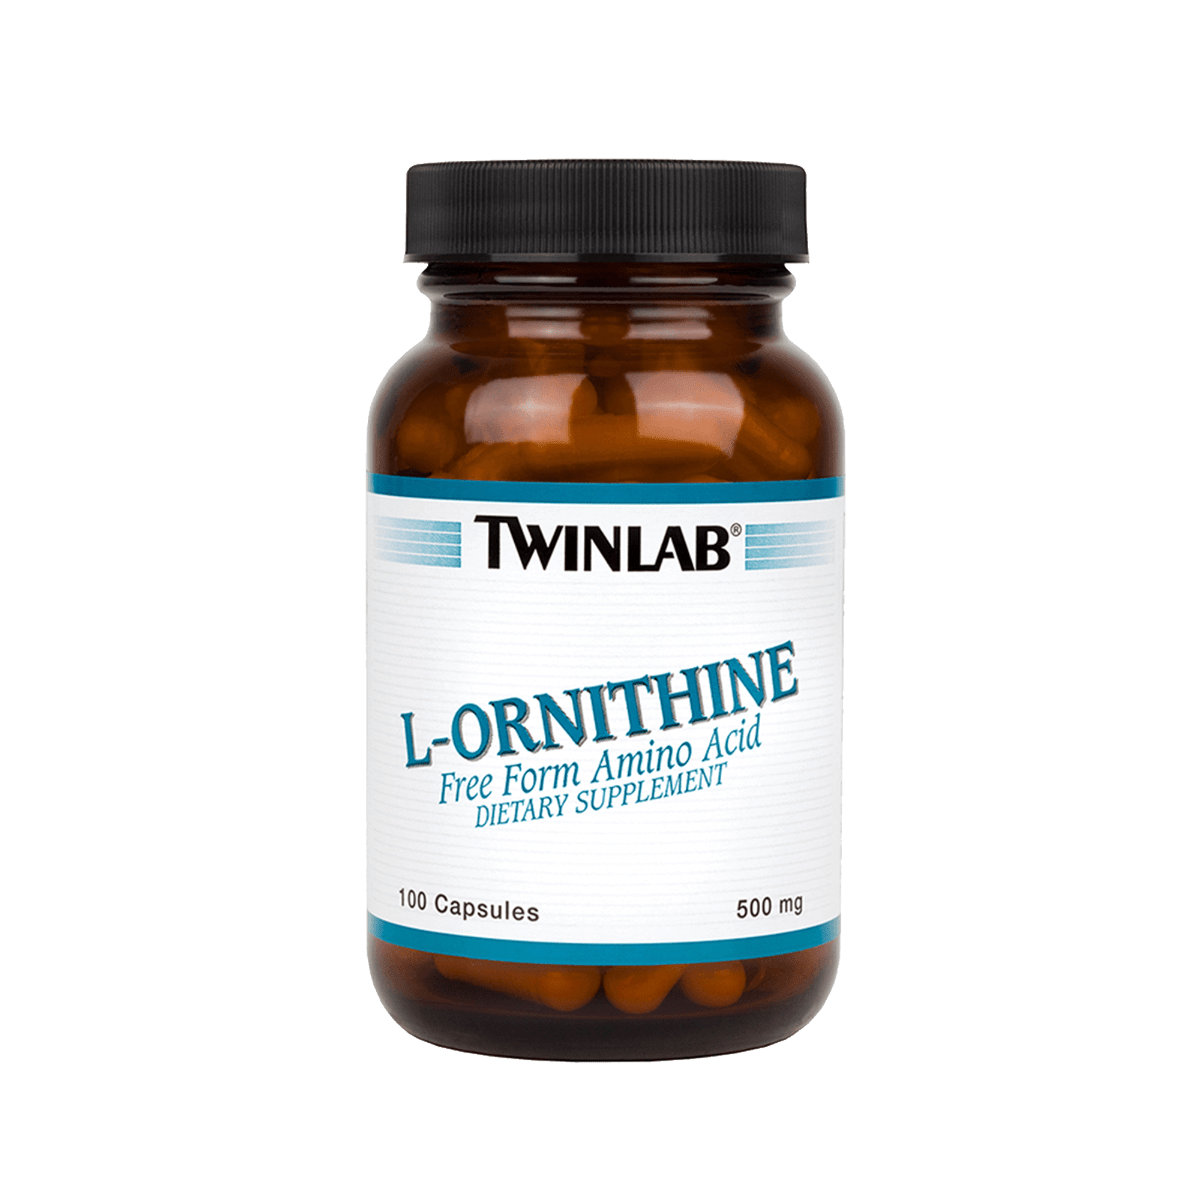 Twinlab® L-Ornithine Caps deliver 500 mg of the free-form amino acid l-ornithine in just one capsule a day.